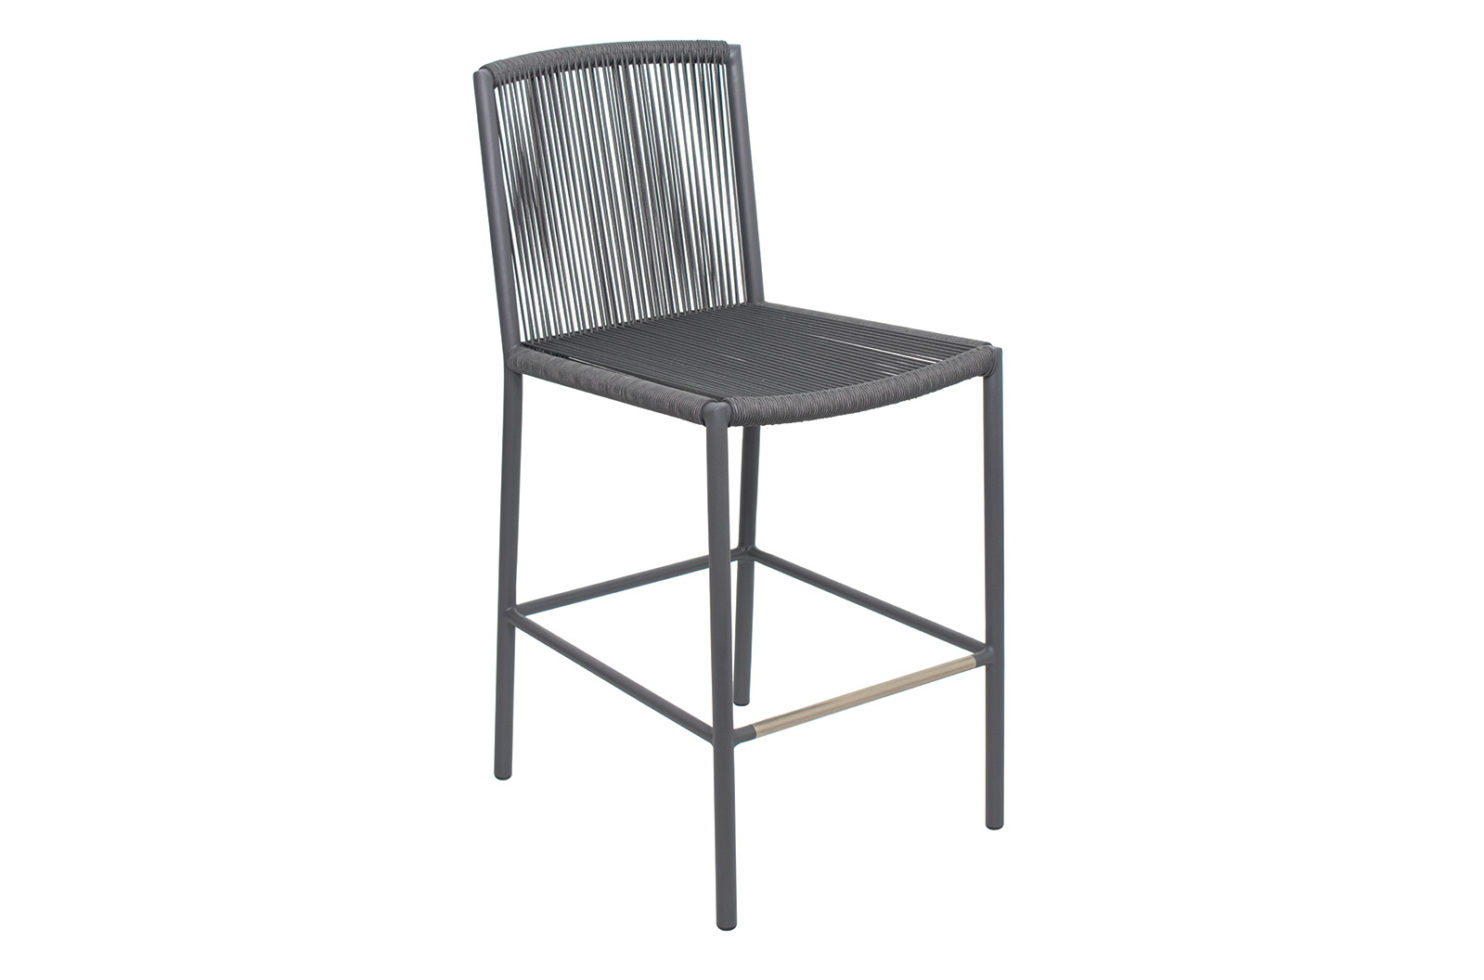 Archipelago Stockholm Counter Chair 620FT045P2DGP 1 3Q